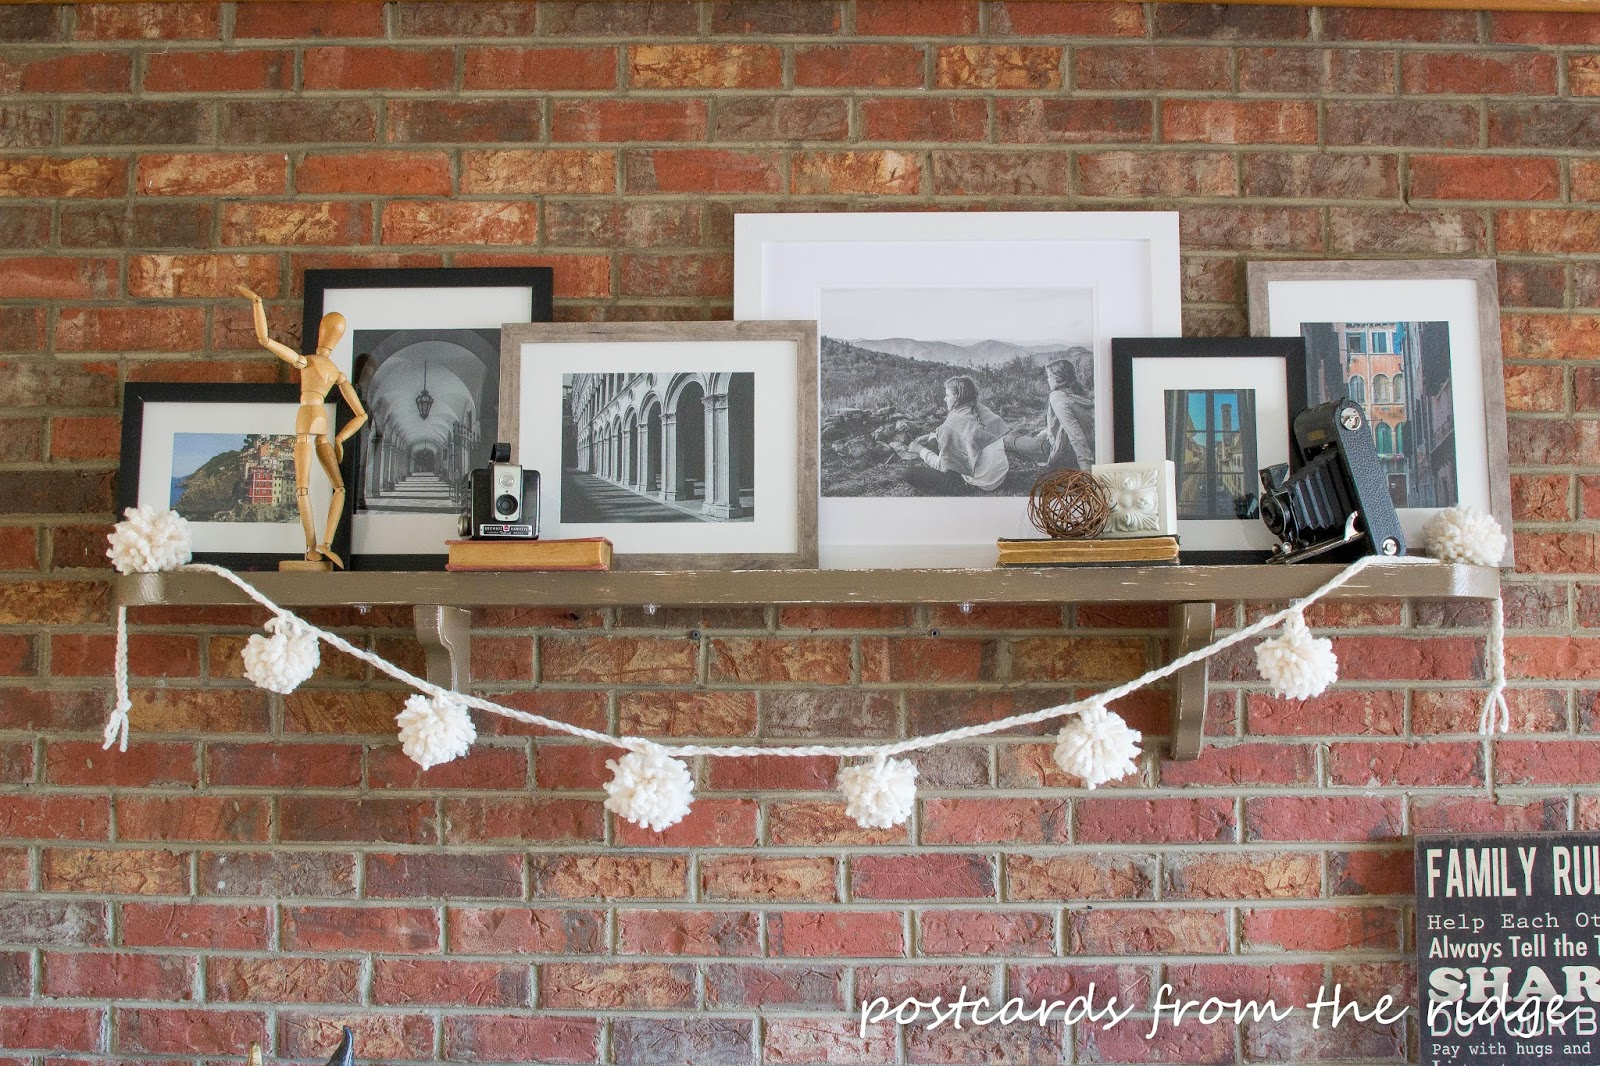 yarn pom pom on fireplace mantel